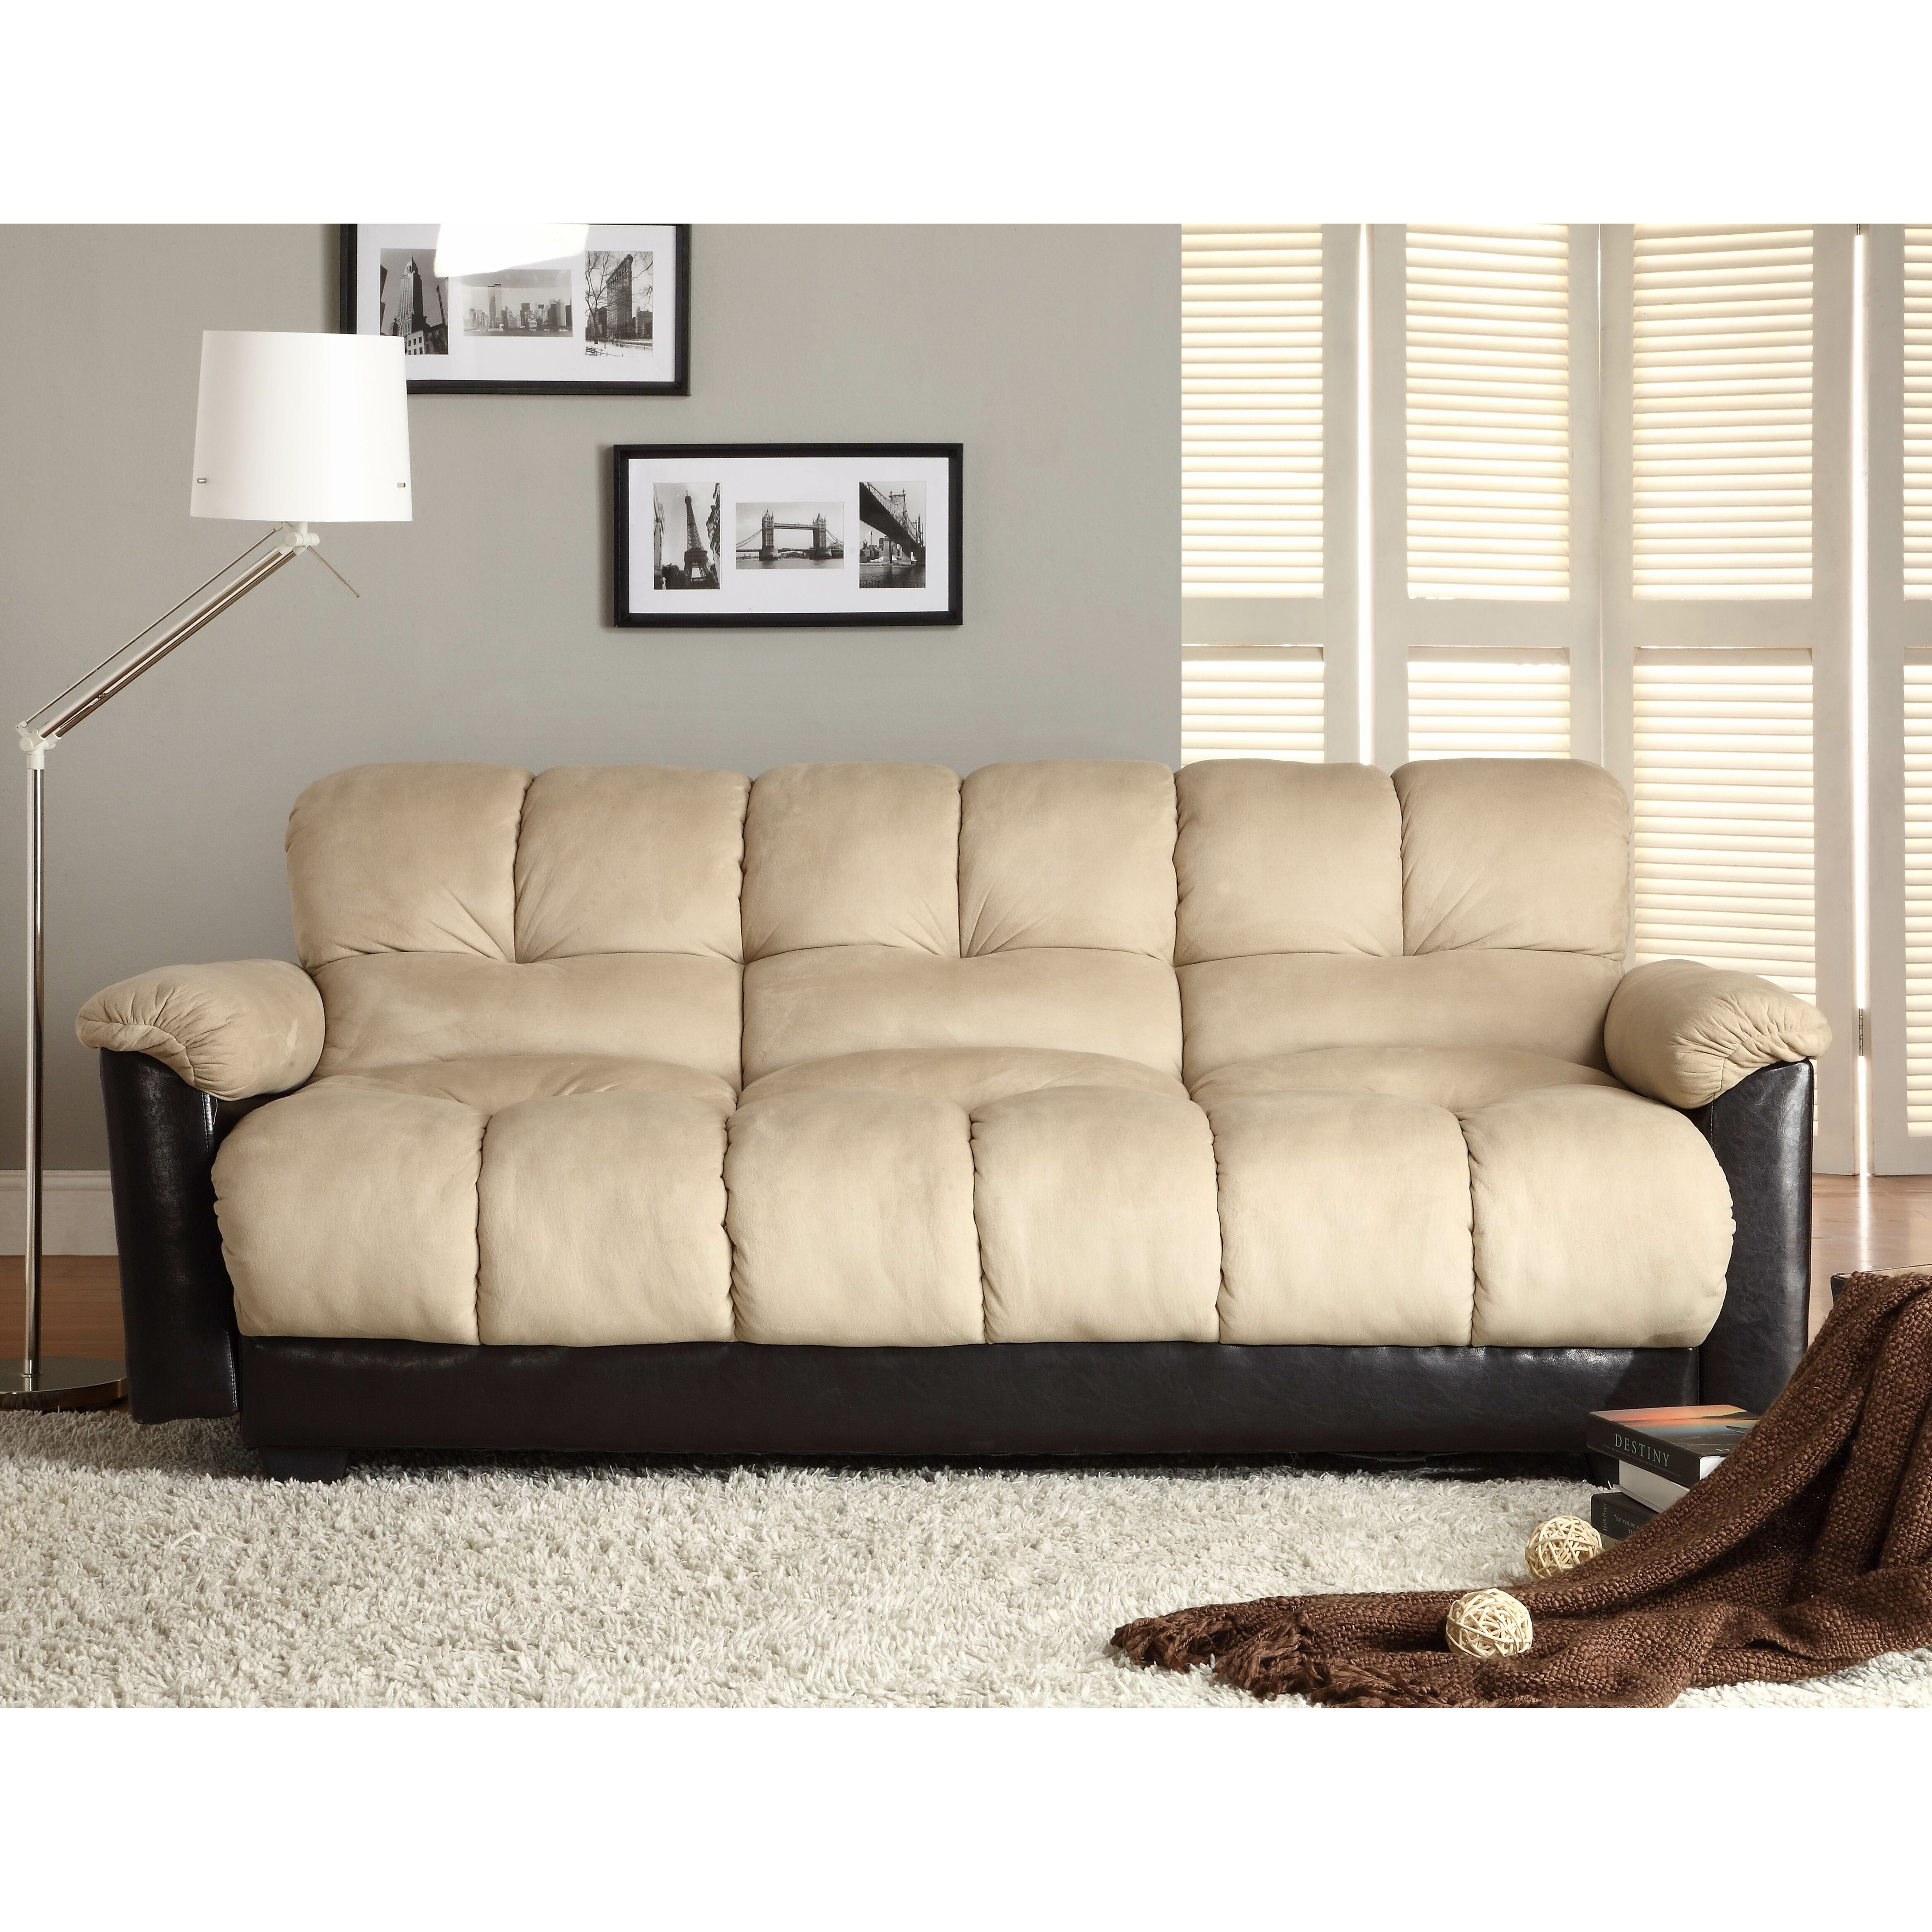 Woodhaven Hill Piper Sleeper Sofa Amp Reviews Wayfair